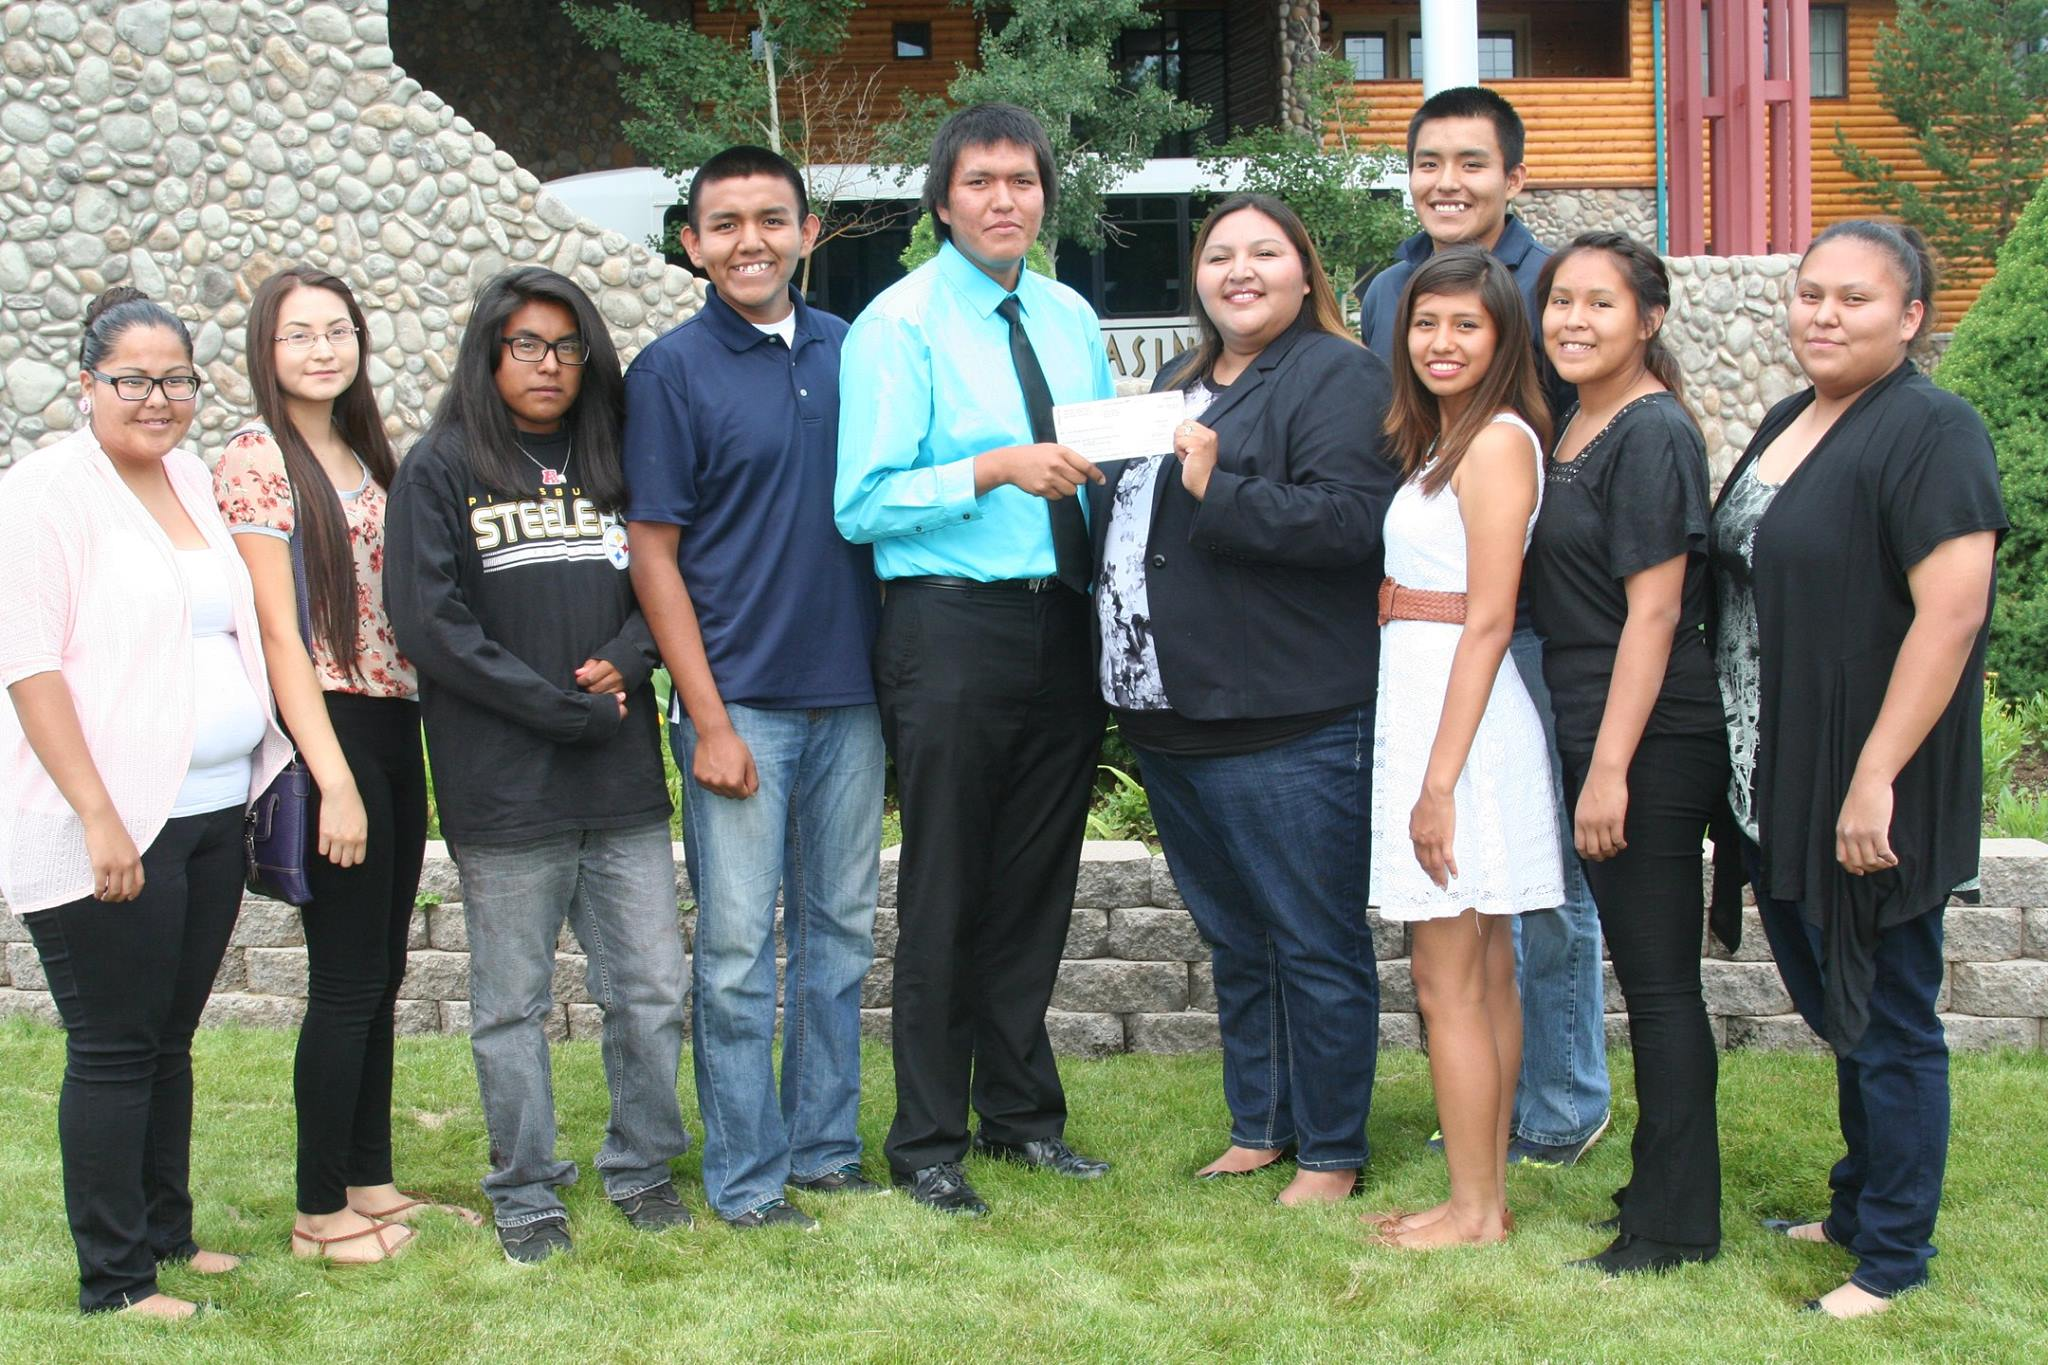 Company pushing mine at sacred site gives $10K to Apache youth